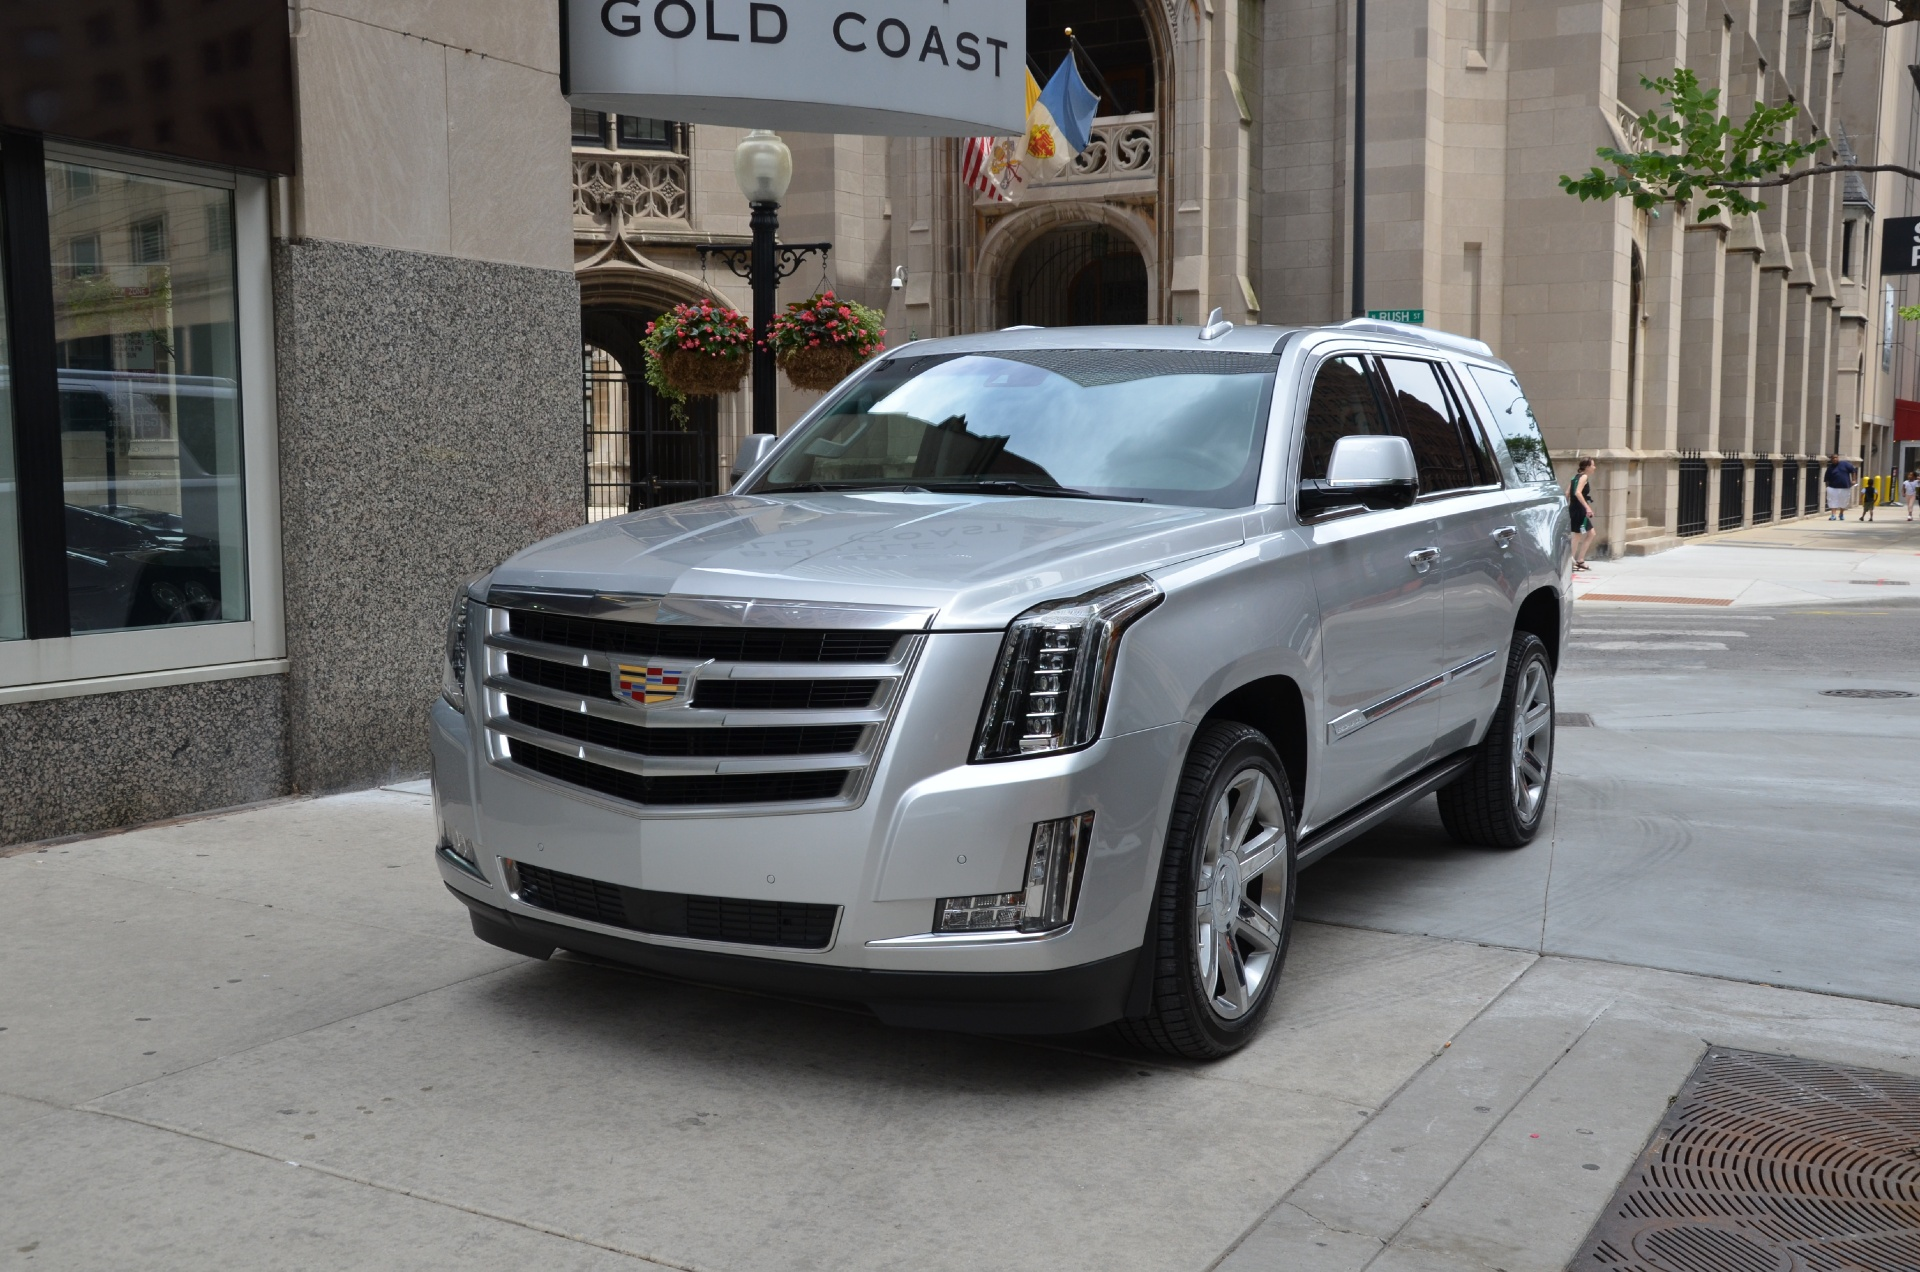 2015 cadillac escalade premium used bentley used rolls for Gold coast bentley luxury motors